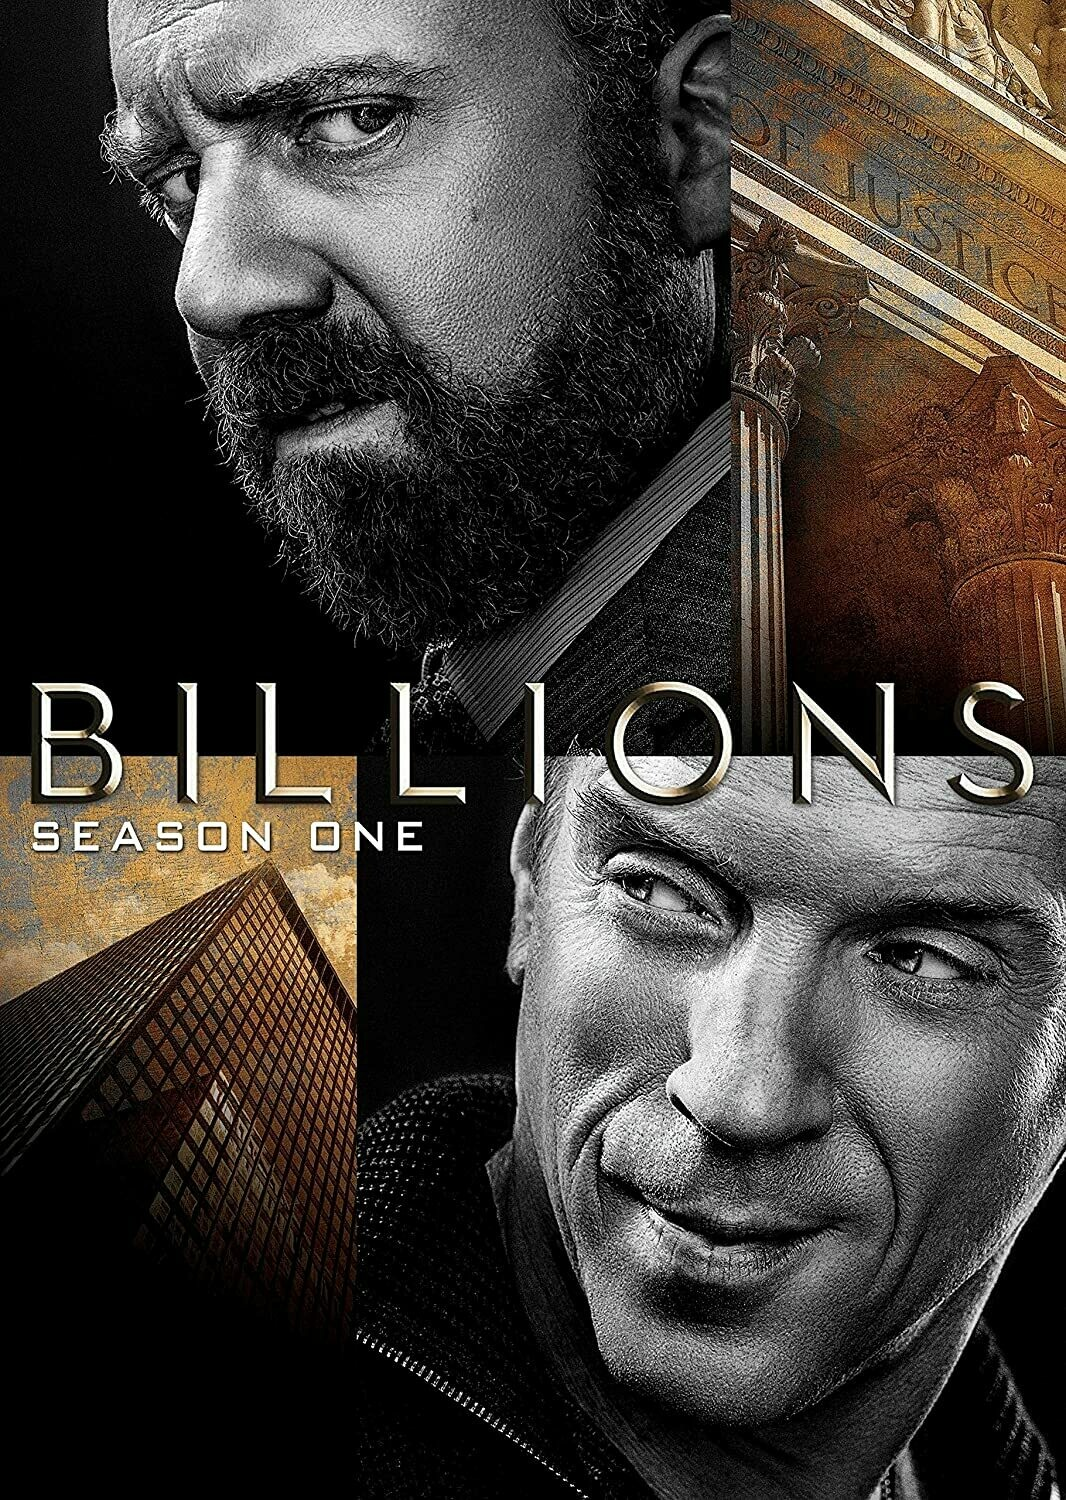 Billions Season One (7 day rental)